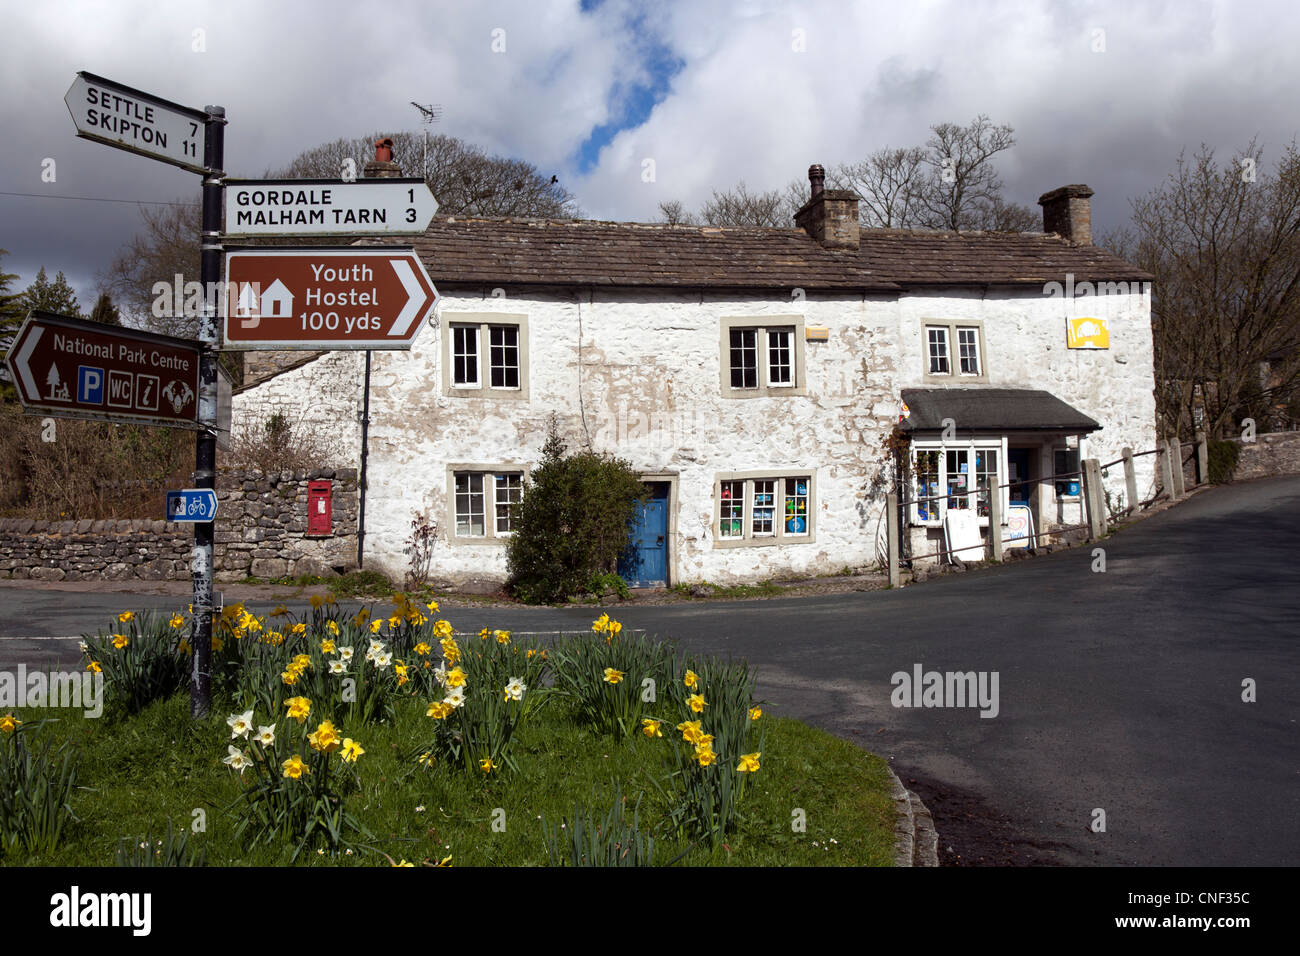 Subsided Property & Road Sign for Mallam Tarn, Gordale, Youth Hostel, Settle & Skipton in the Village of - Stock Image